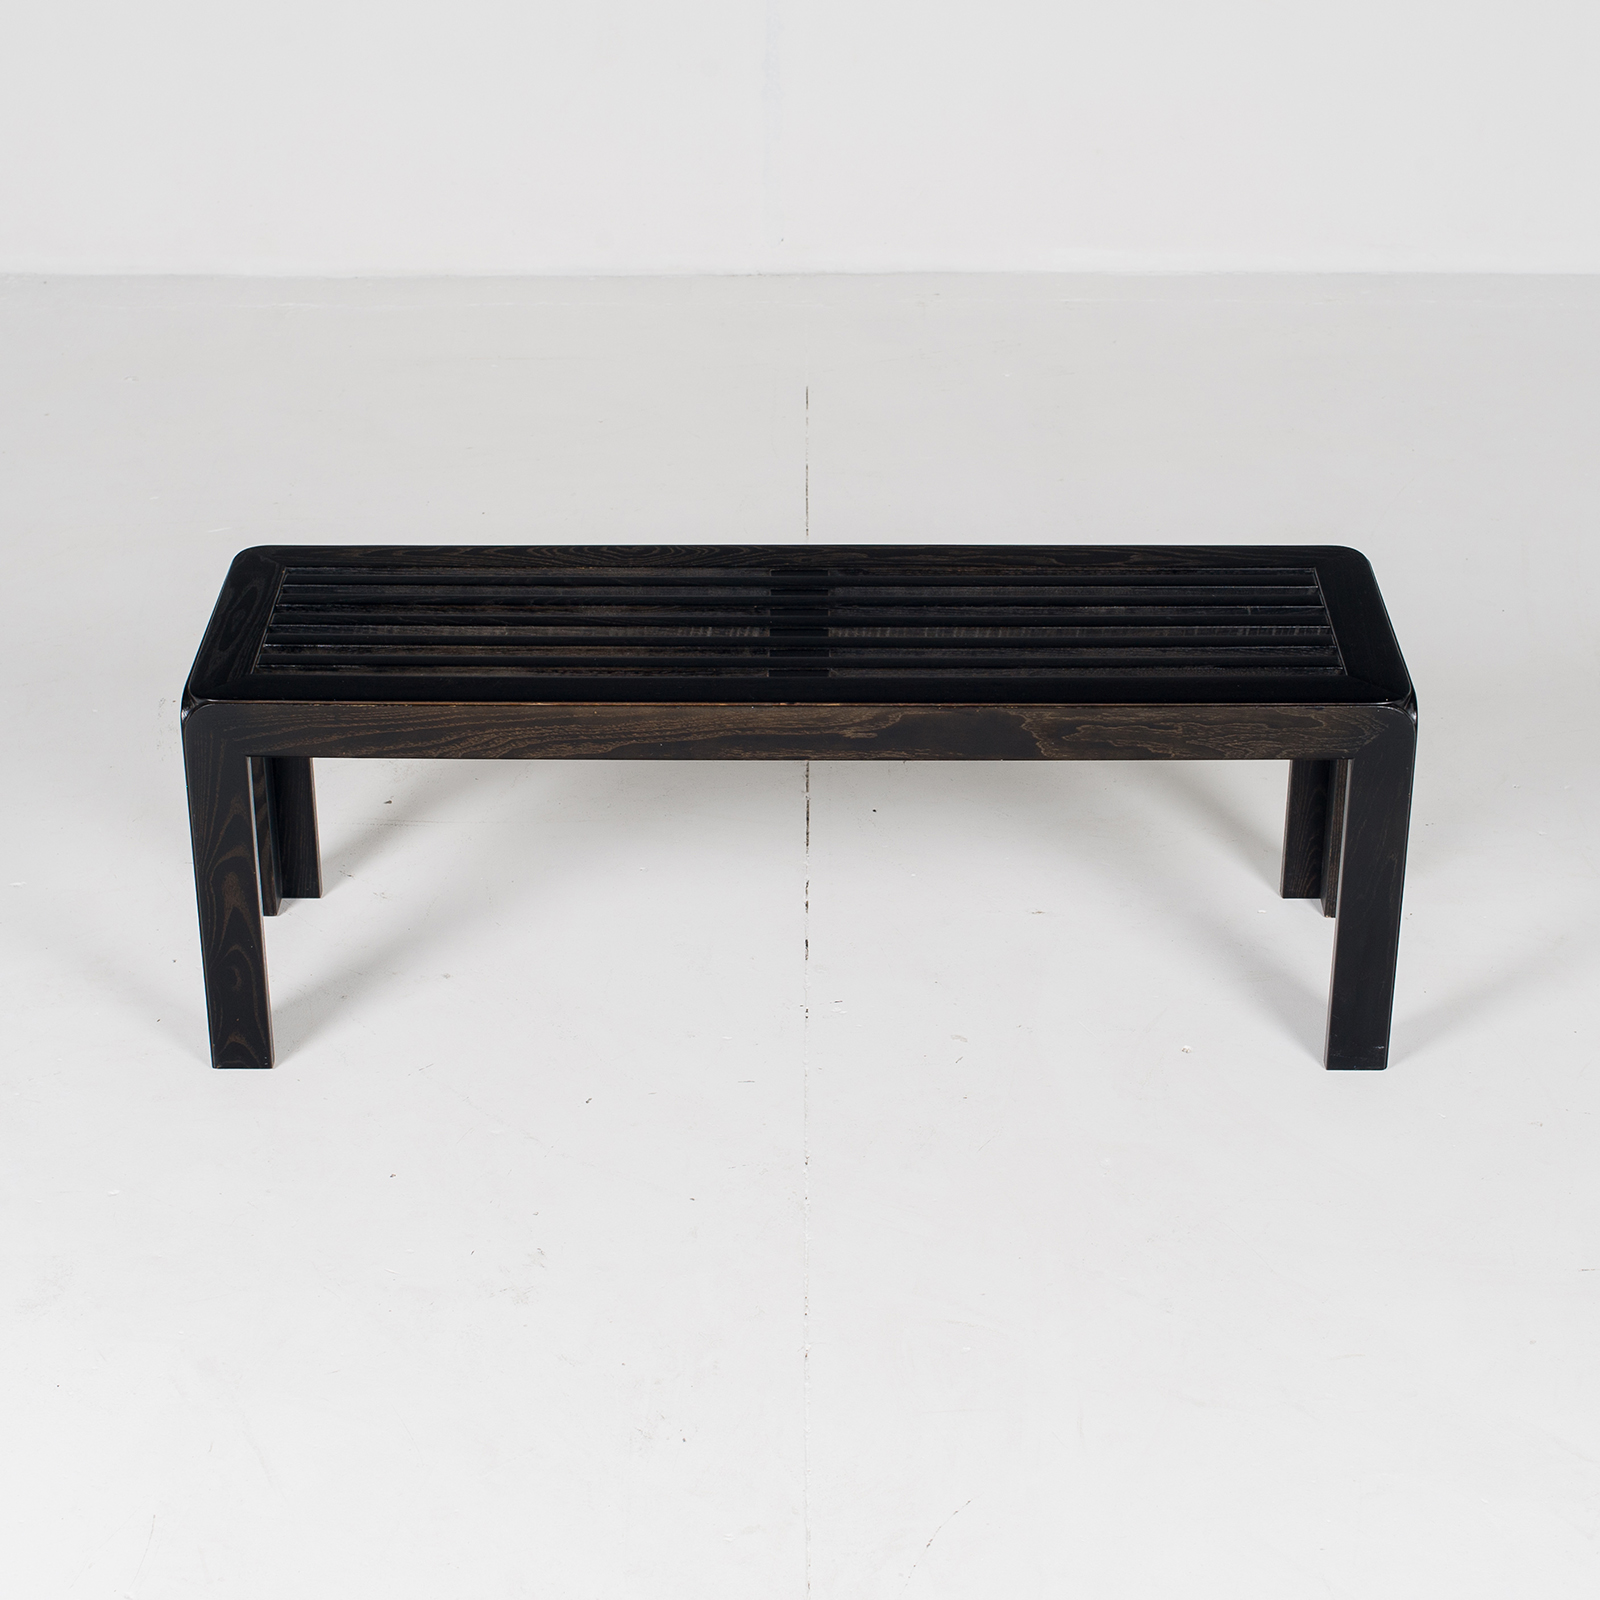 Bench In Black Timber, 1960s, The Netherlands55